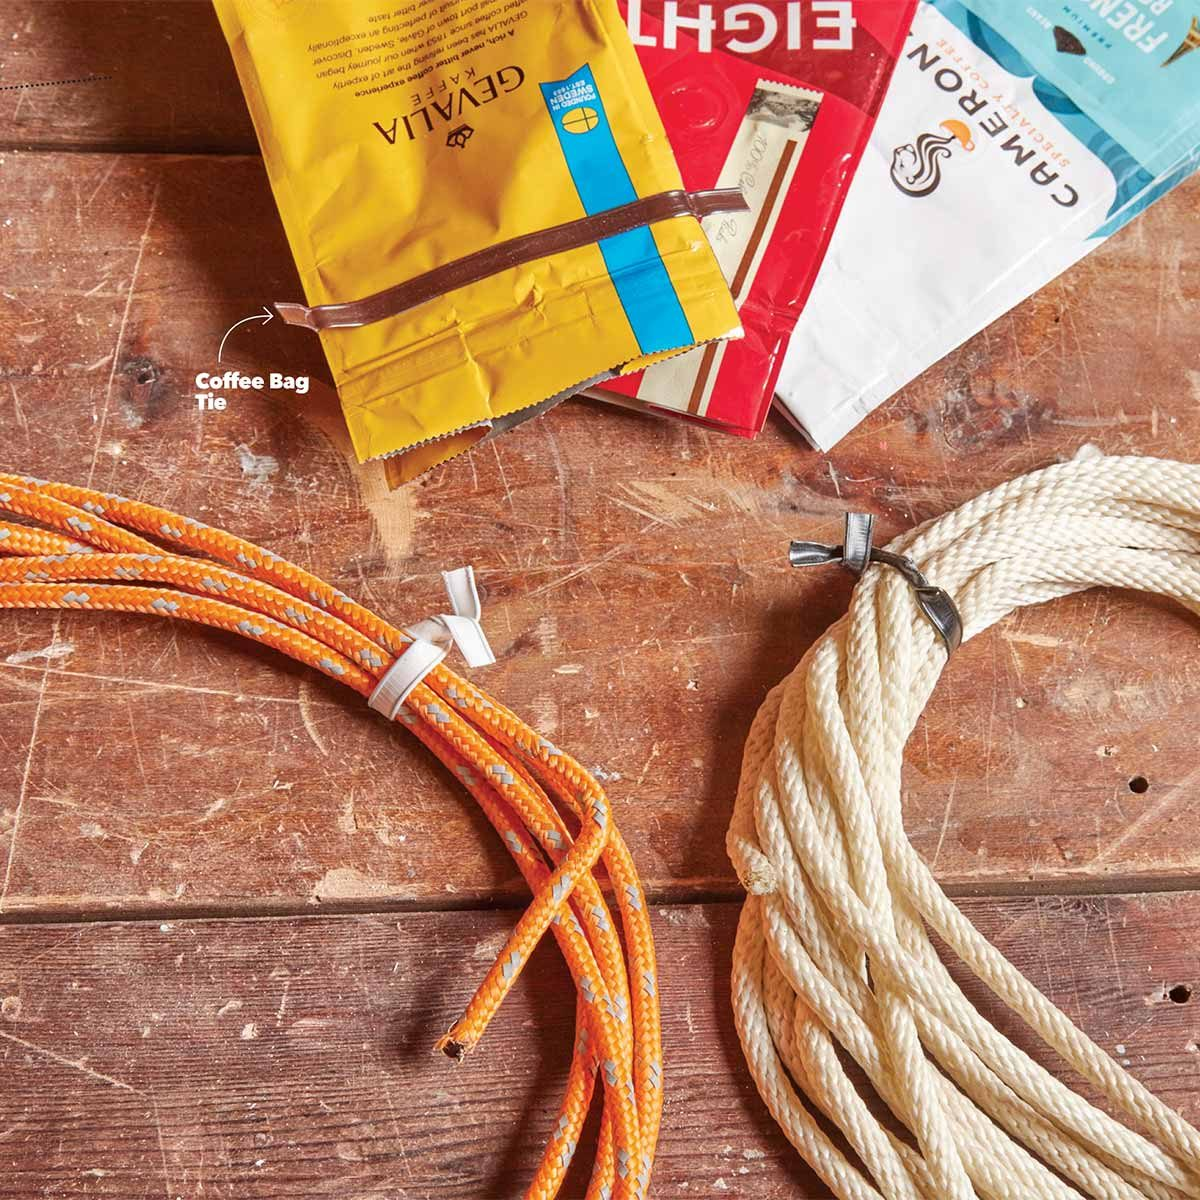 Coffee bag twist ties